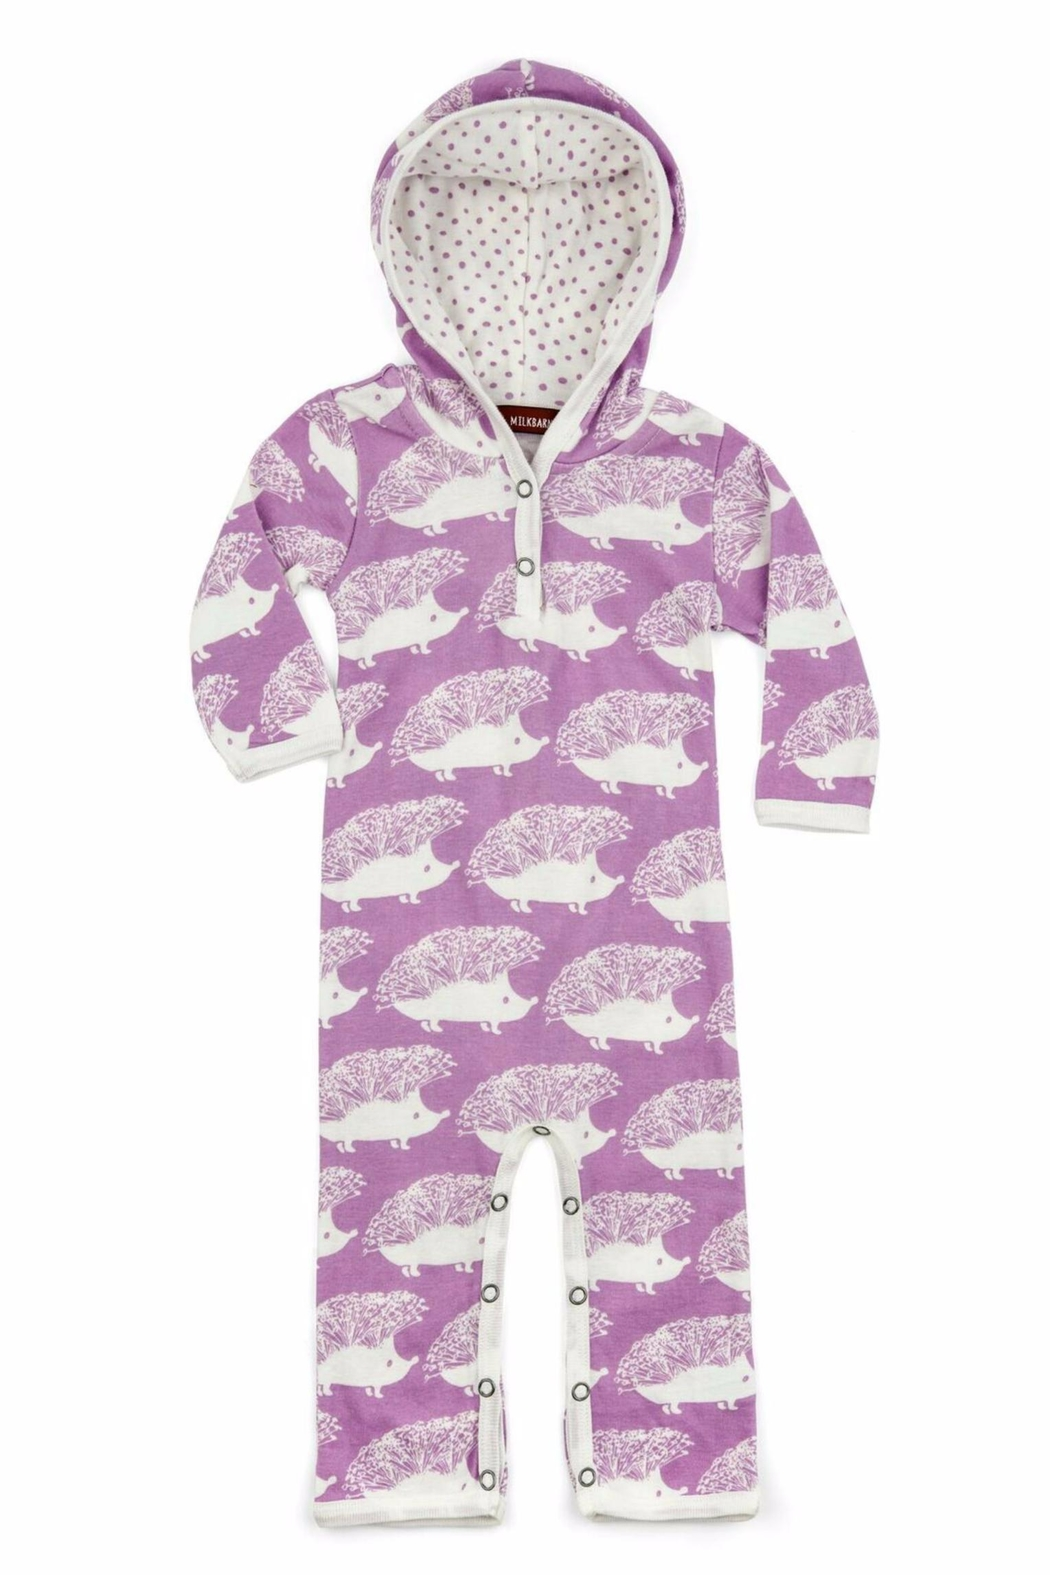 Milkbarn Kids Purple Hooded Romper Hedgehogs - Main Image